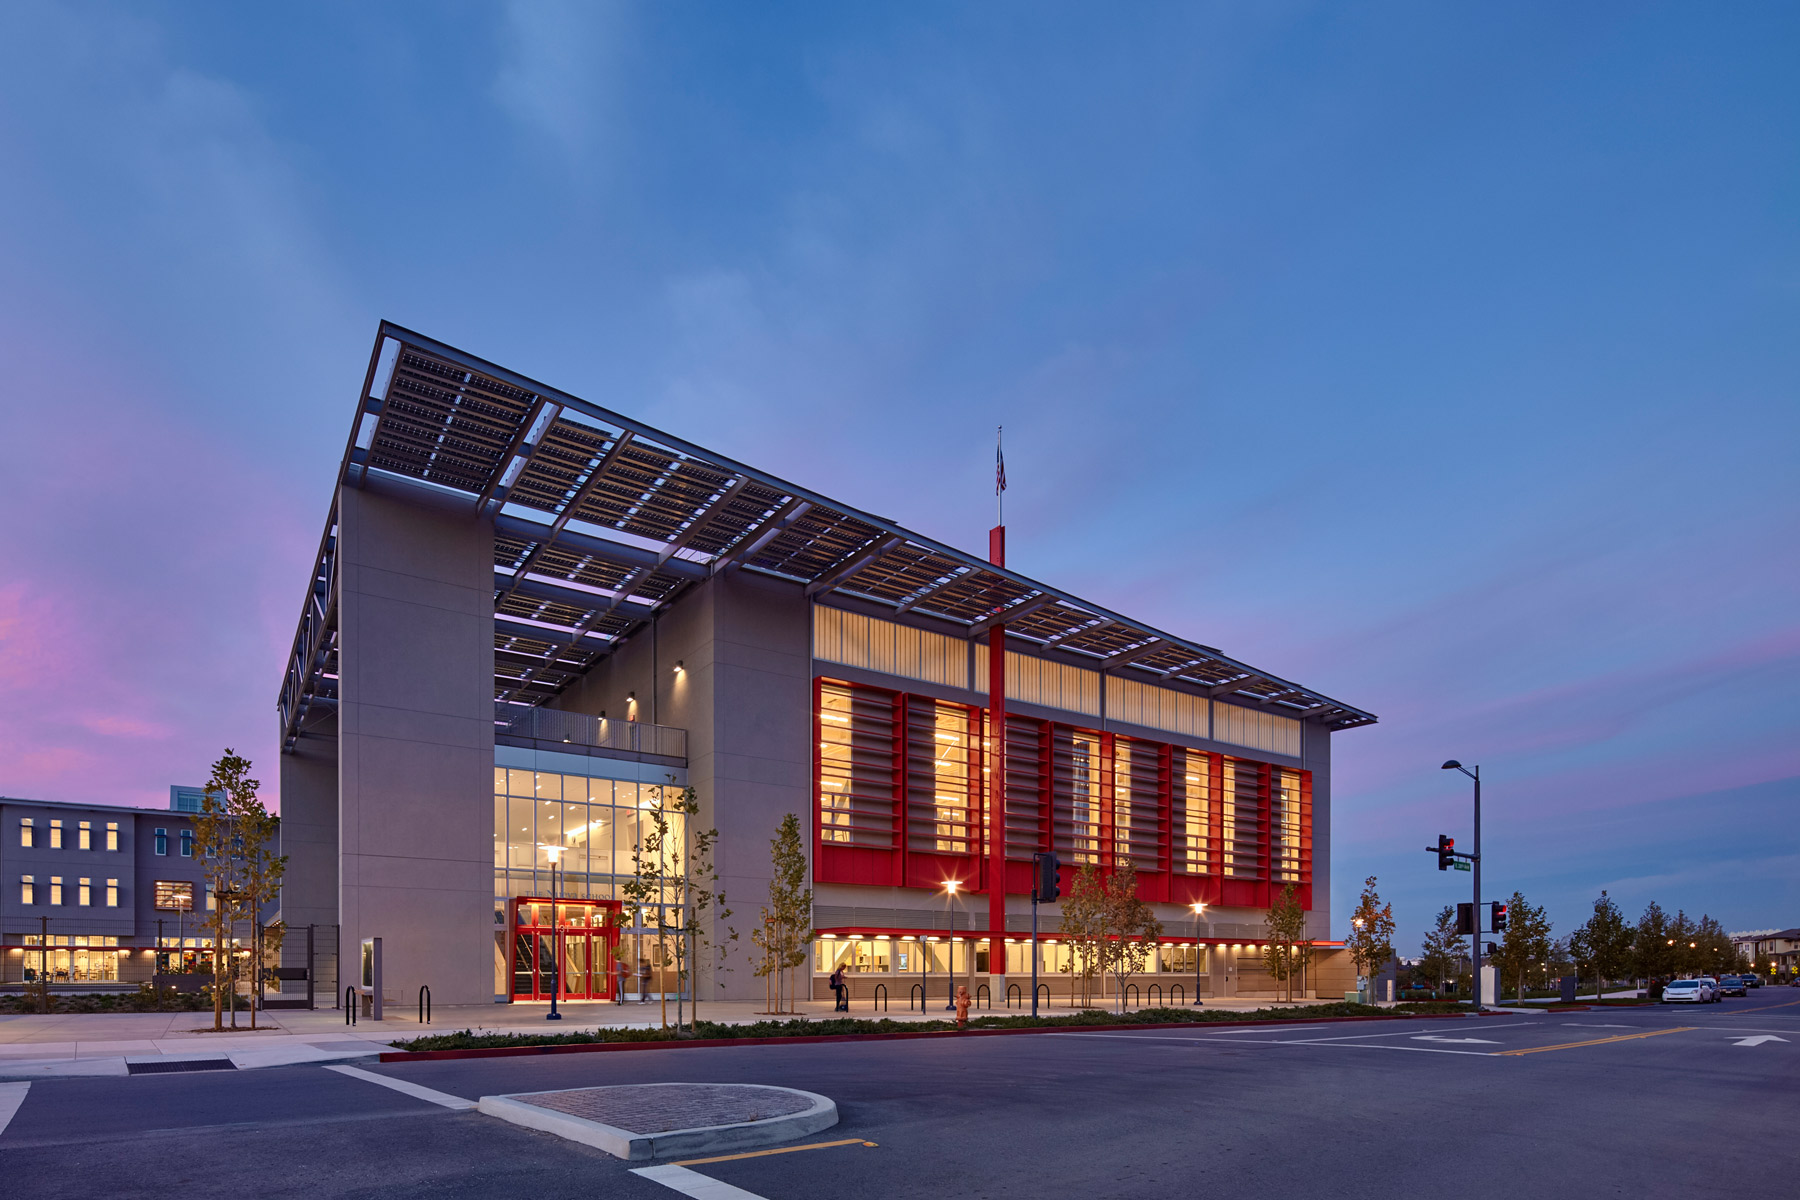 The Nueva School at Bay Meadows is a nationally-recognized sustainable model for innovative educational environments for 21st century learners located in the San Francisco Bay Area; the campus is certified LEED Gold.